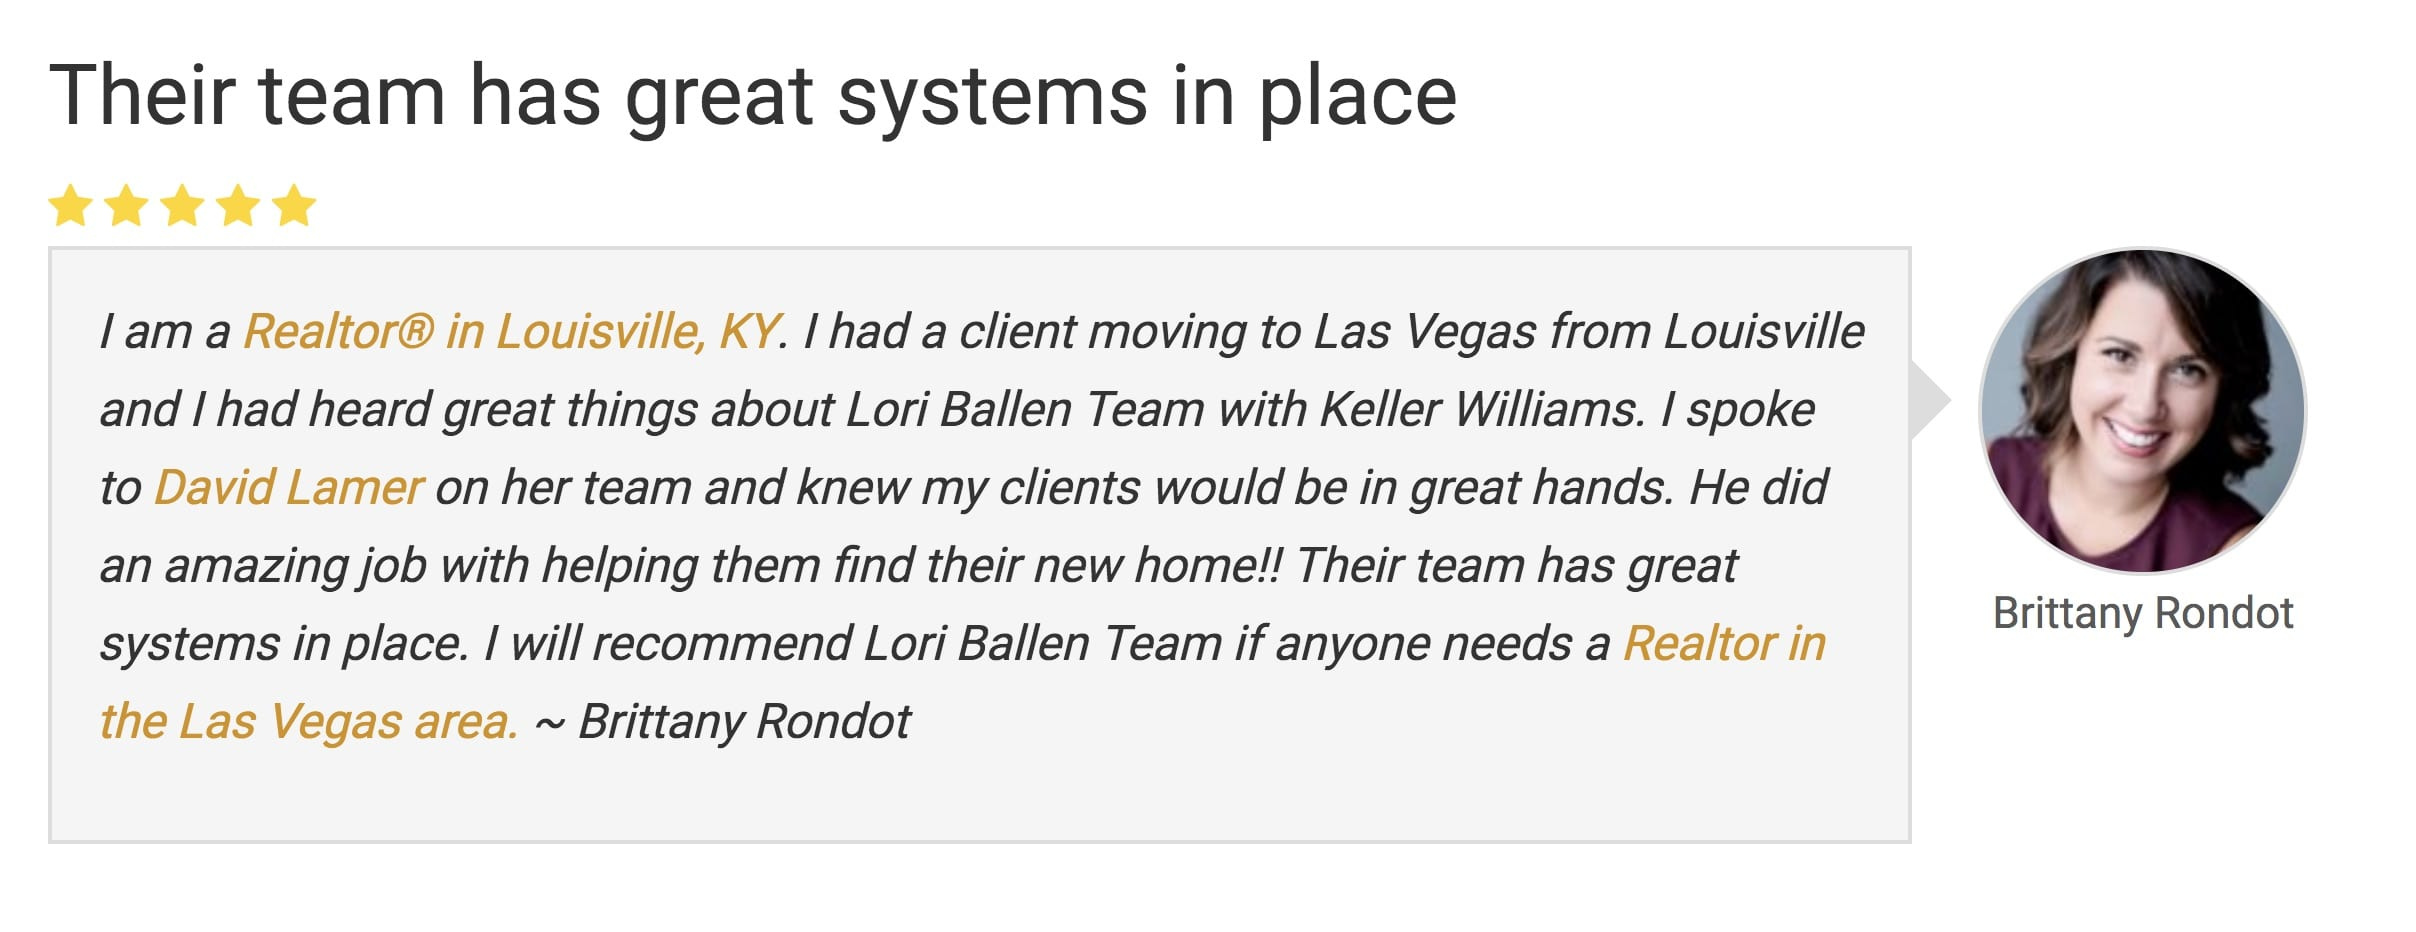 Picture of a reviews submitted about Lori Ballen Real Estate Team in Las Vegas by Brittany Rondot